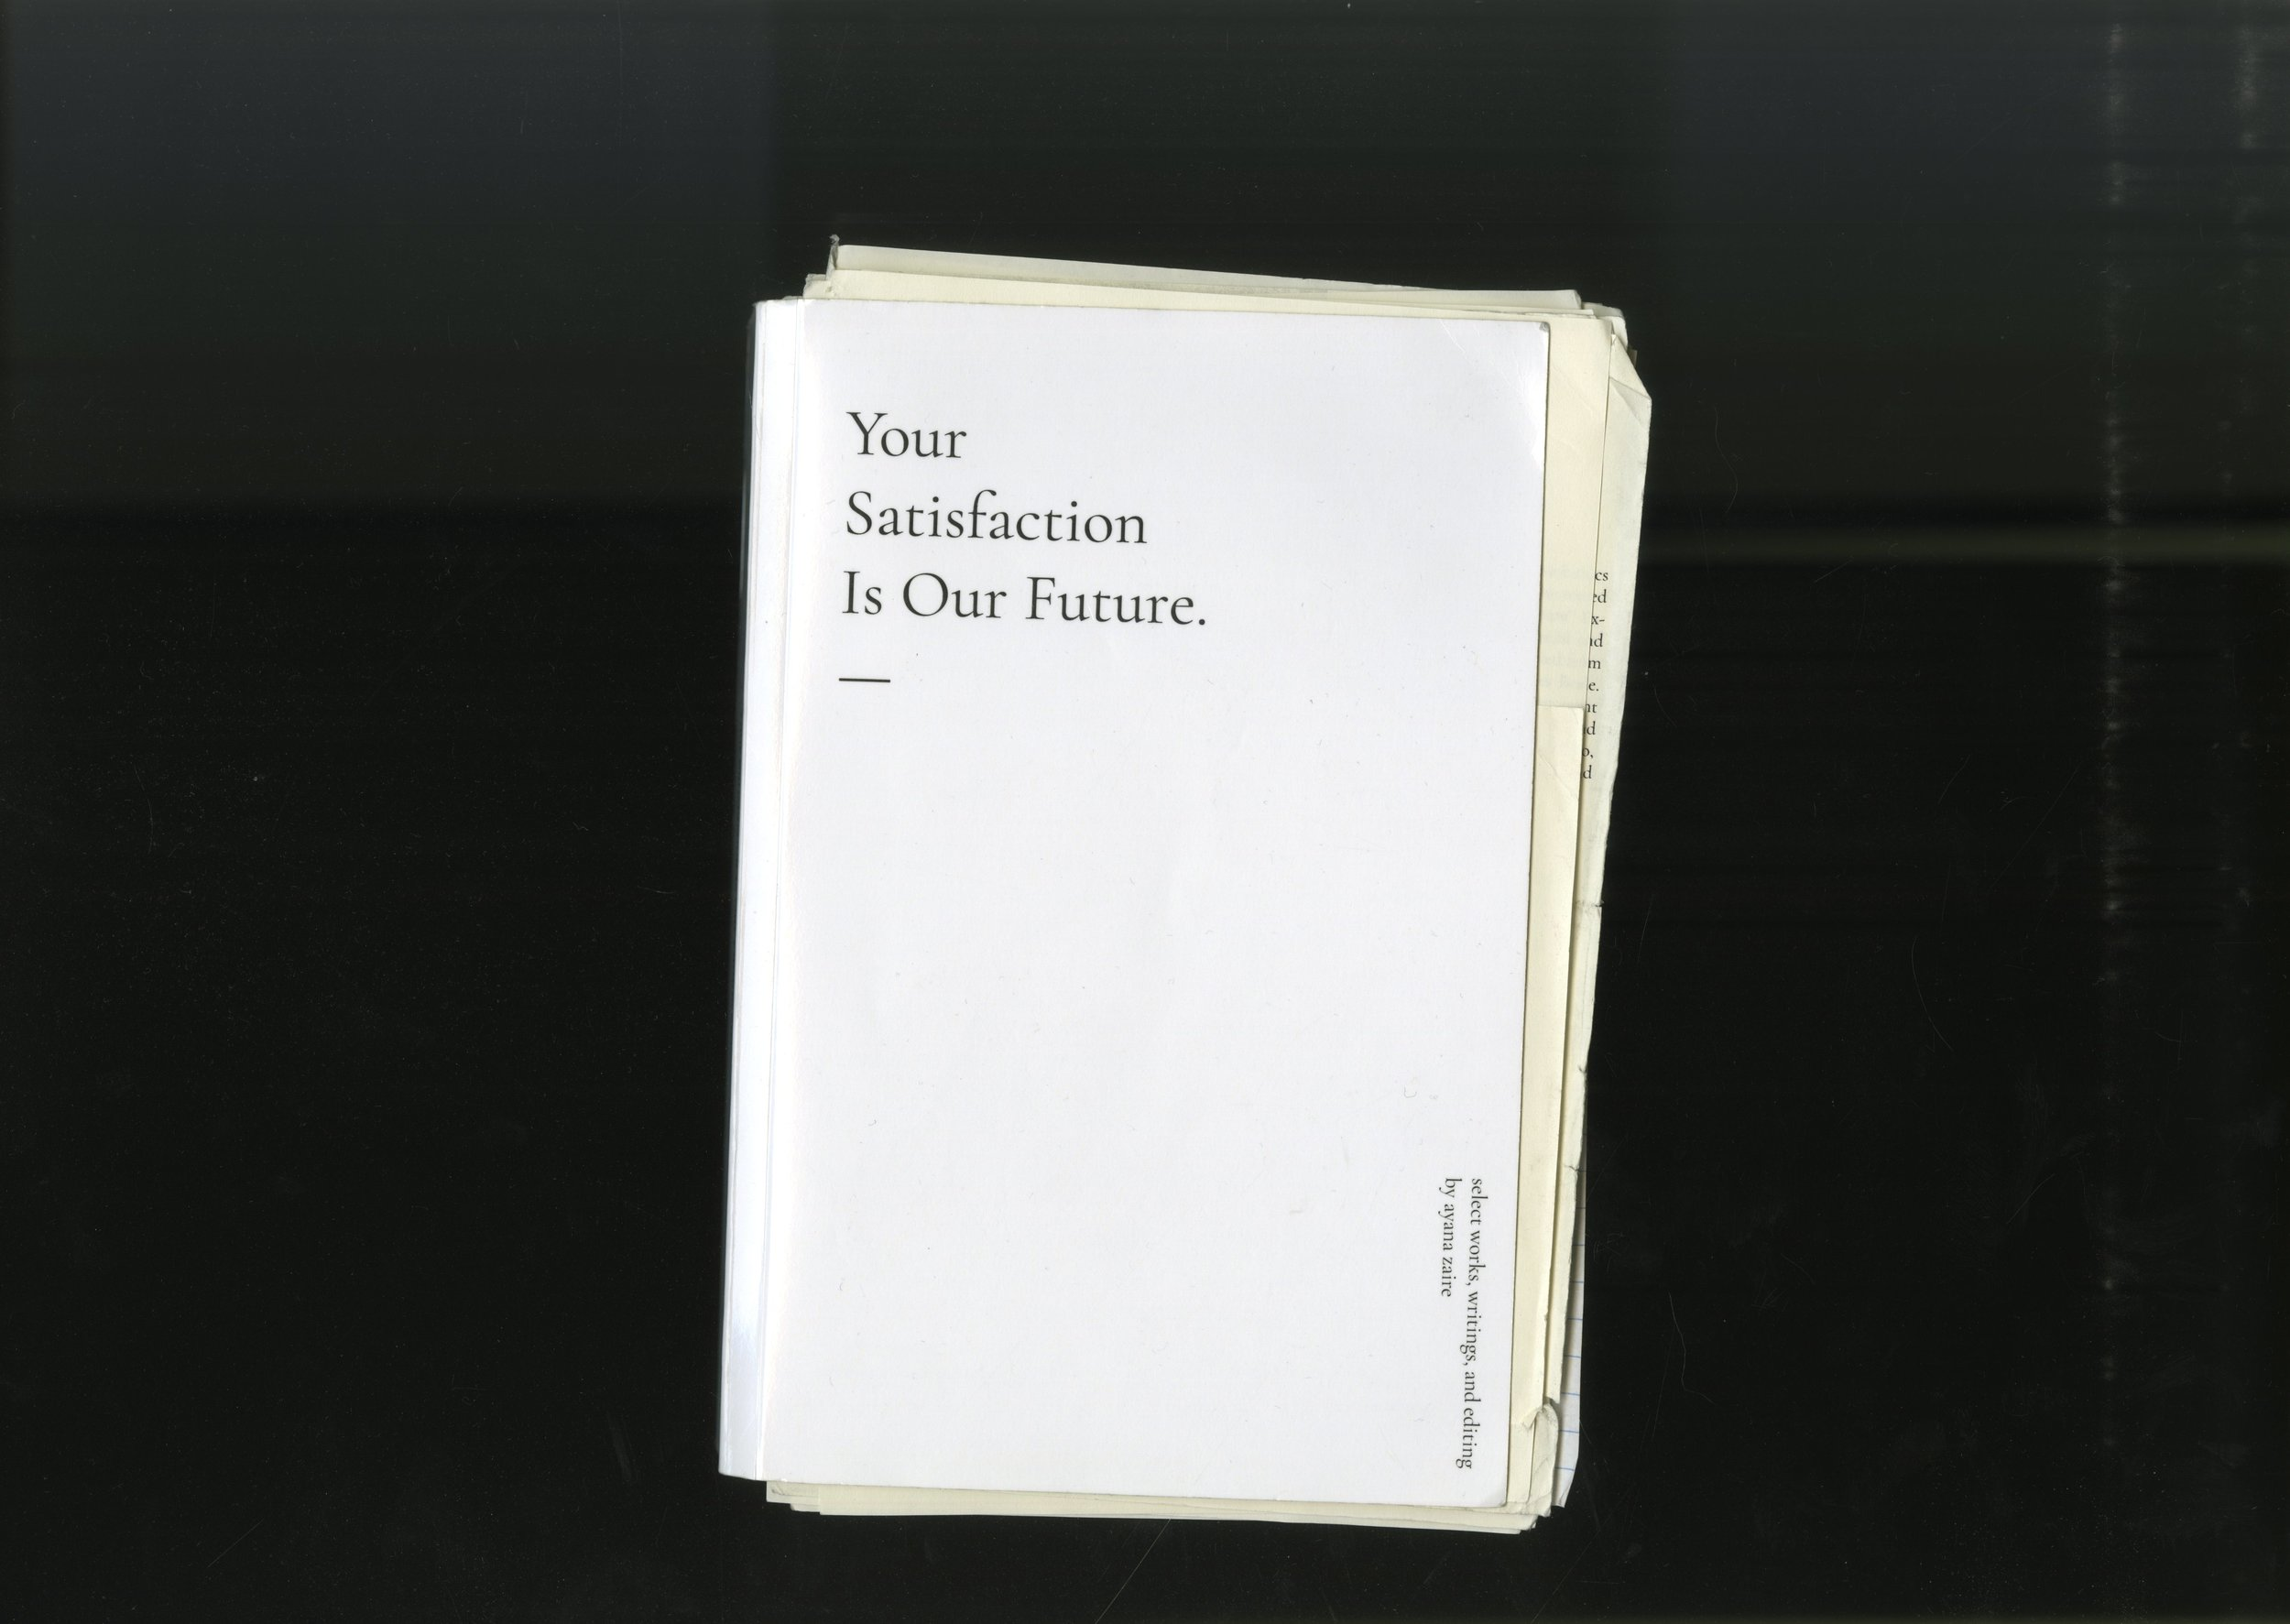 """Your Satisfaction is Our Future"" anthology commemorating the writings, research, work, and images that have come to embody the study on labor, textiles, and capitalism."